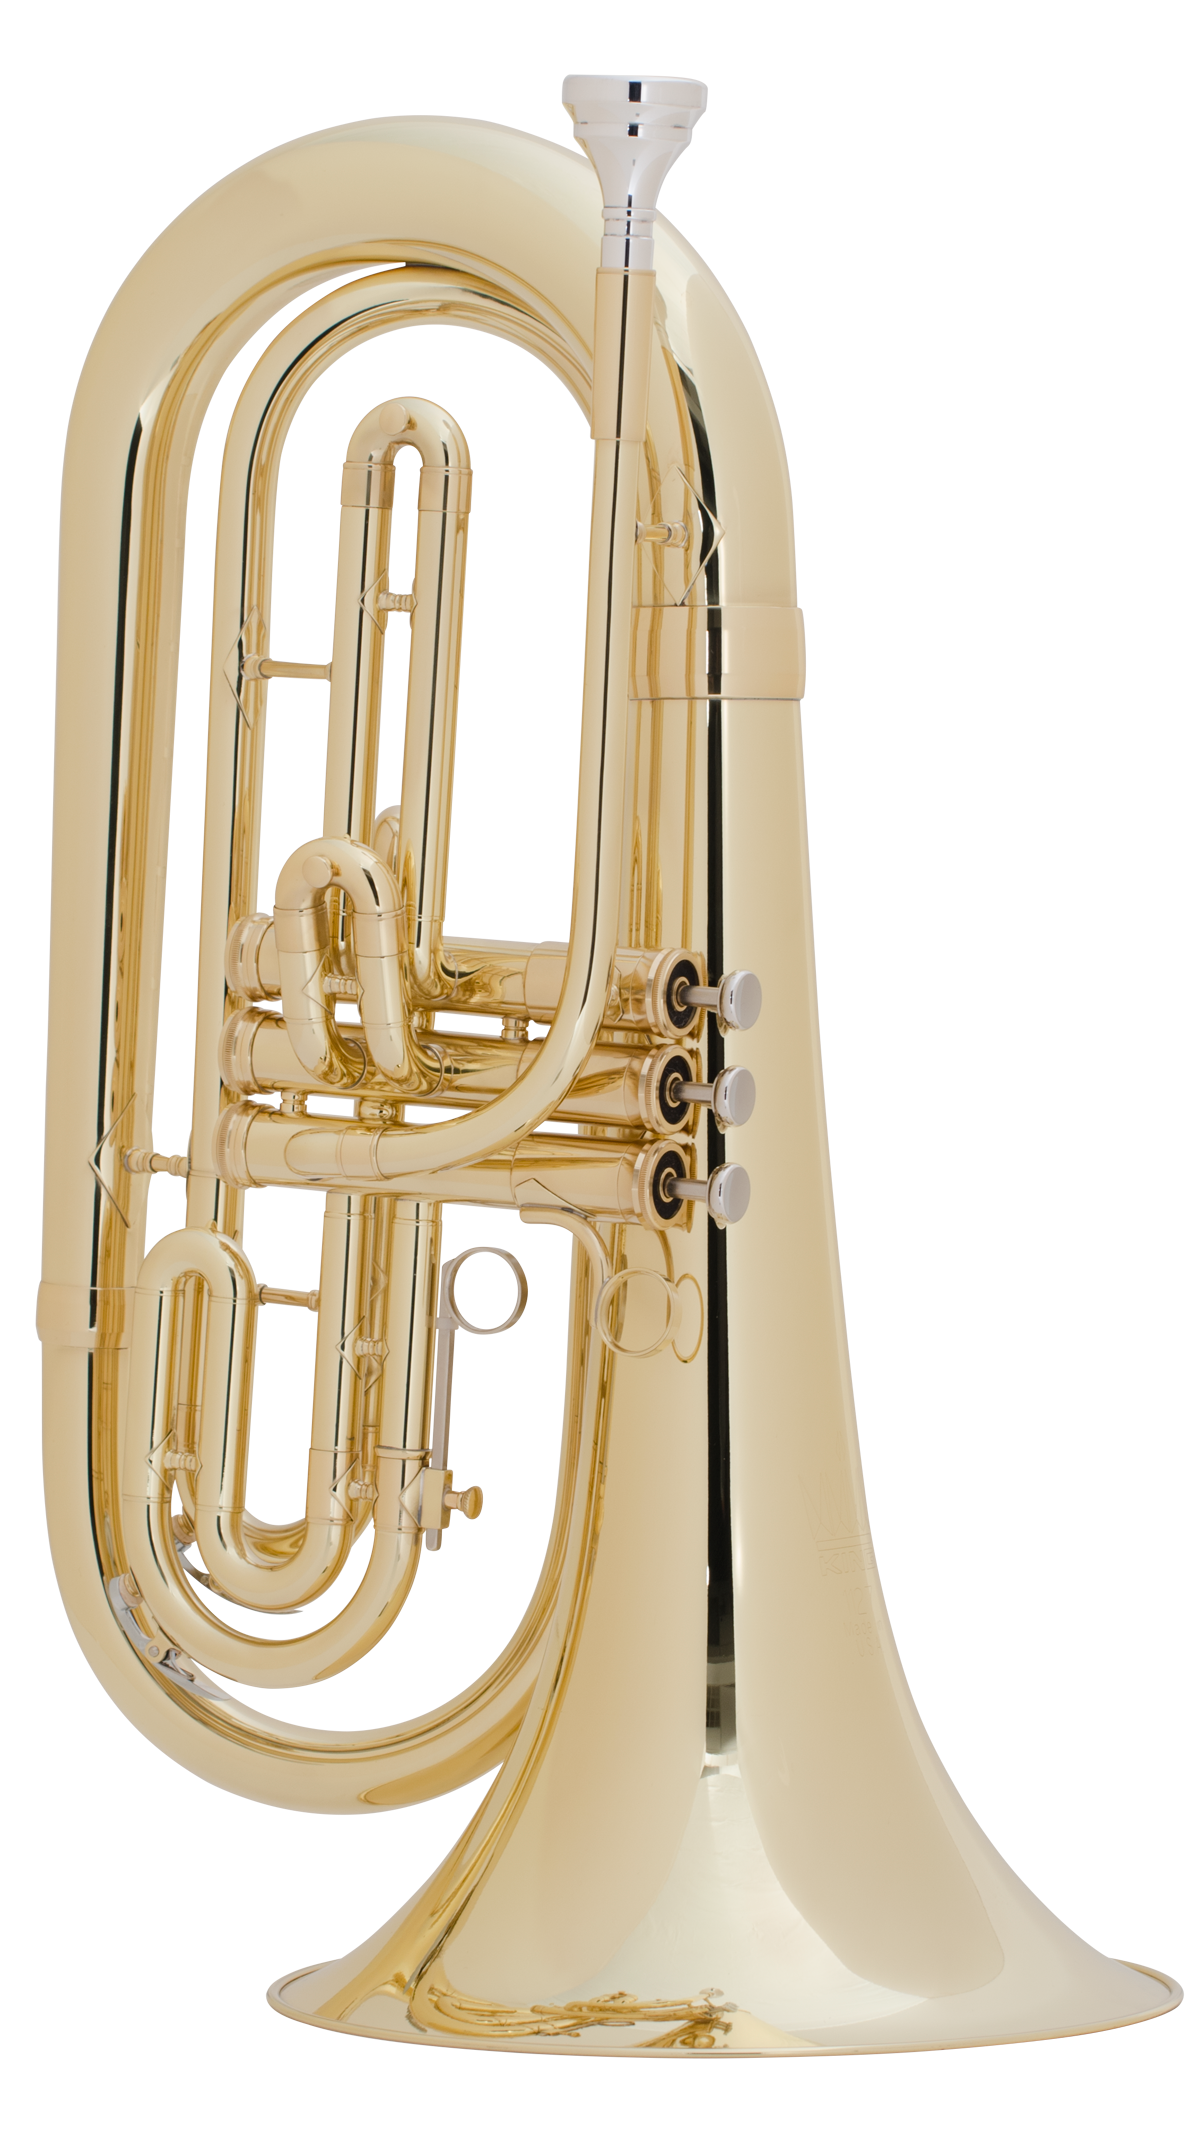 King Professional Model 1127 Marching Baritone